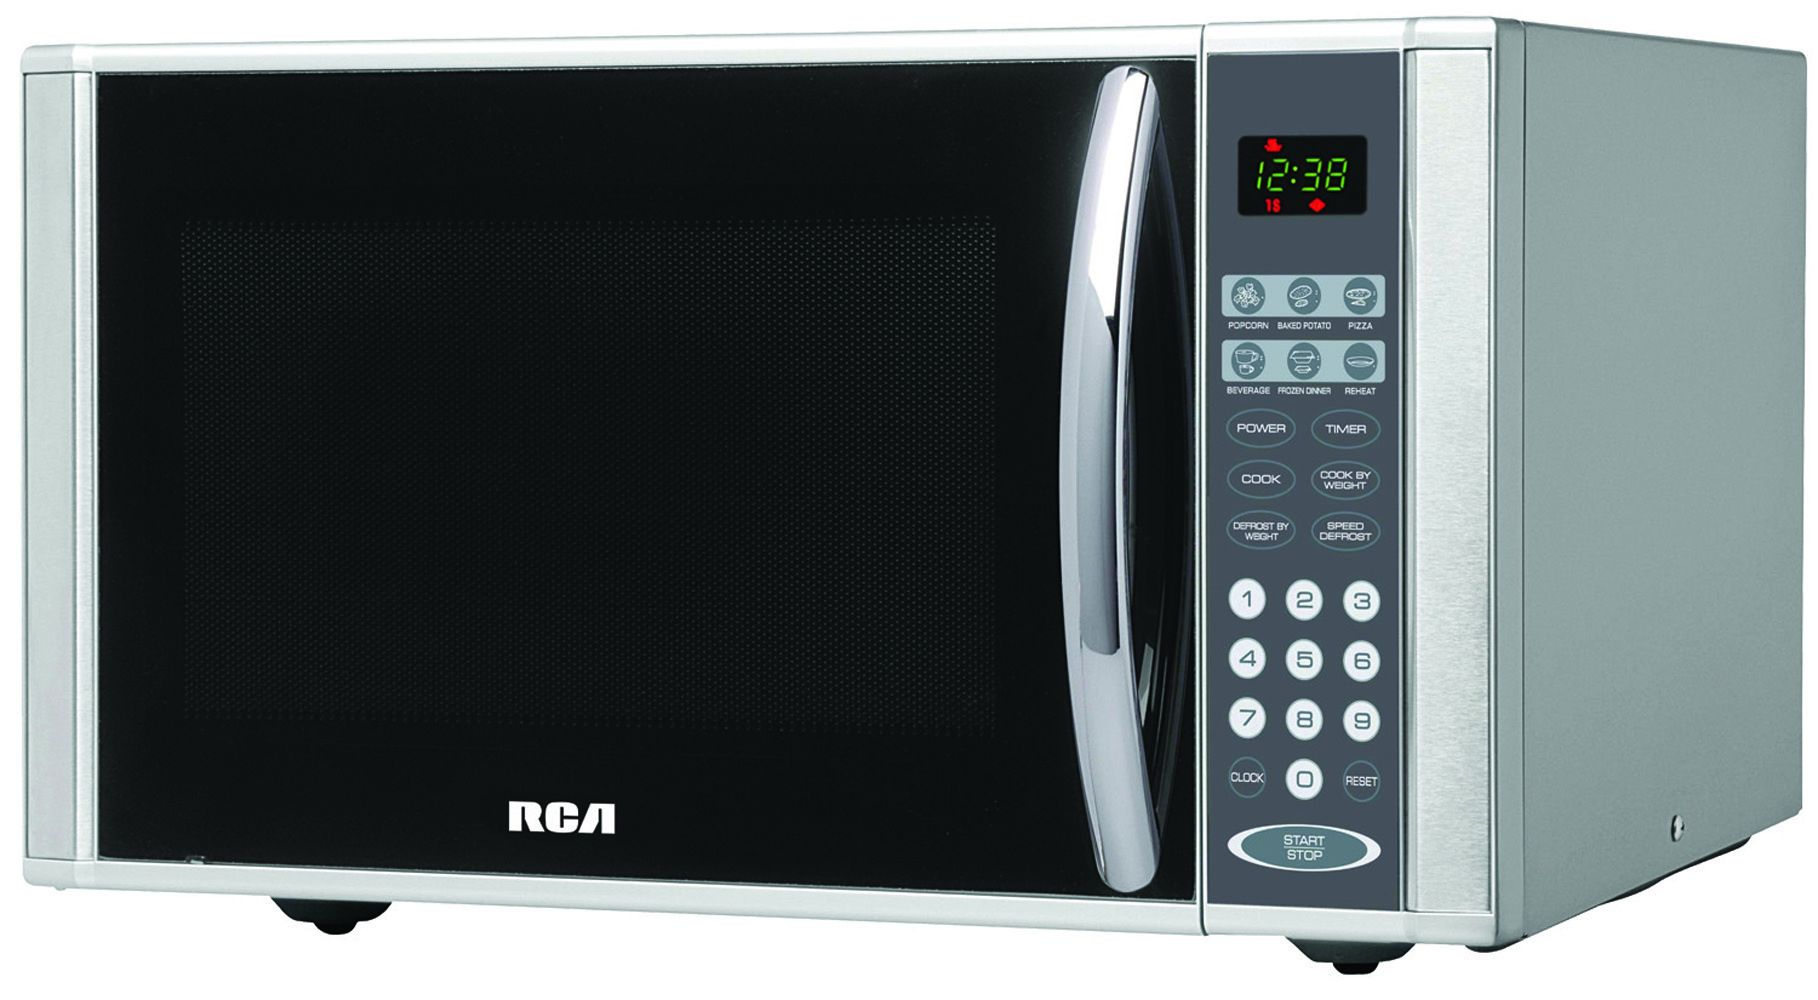 RCA 1.1 CU Ft Microwave Oven Stainless Steel